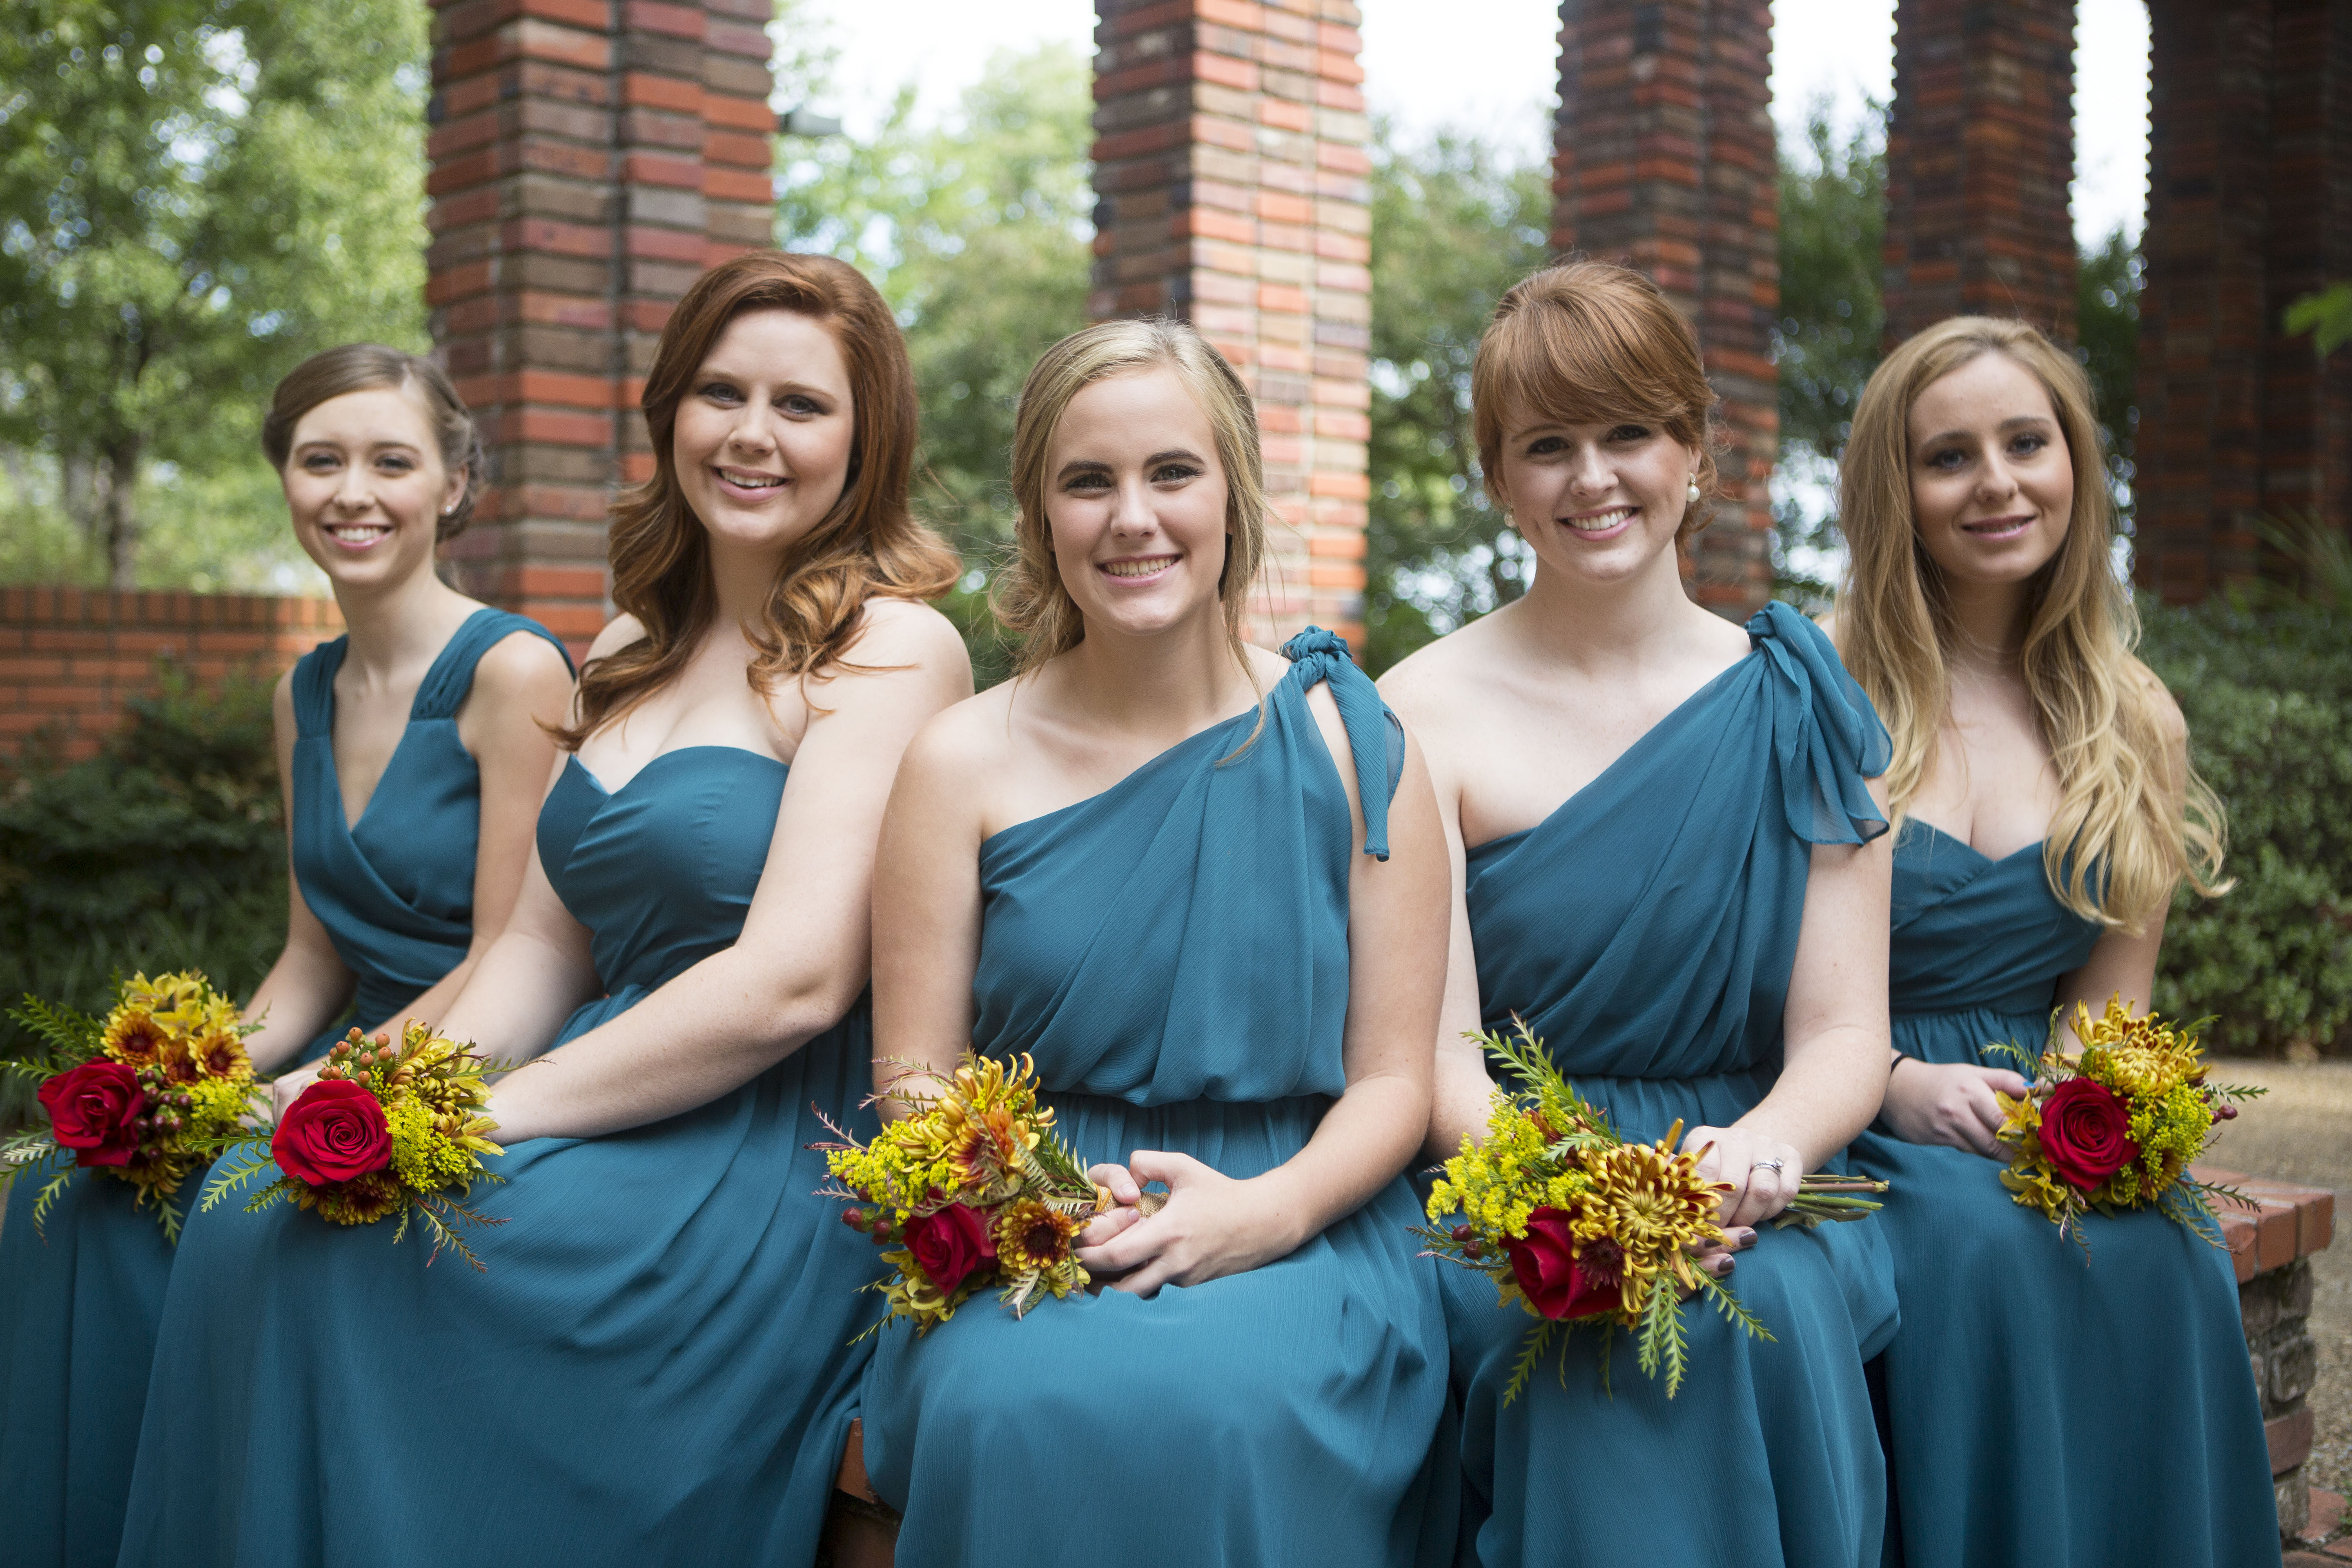 Britt Wedding - Bridesmaids